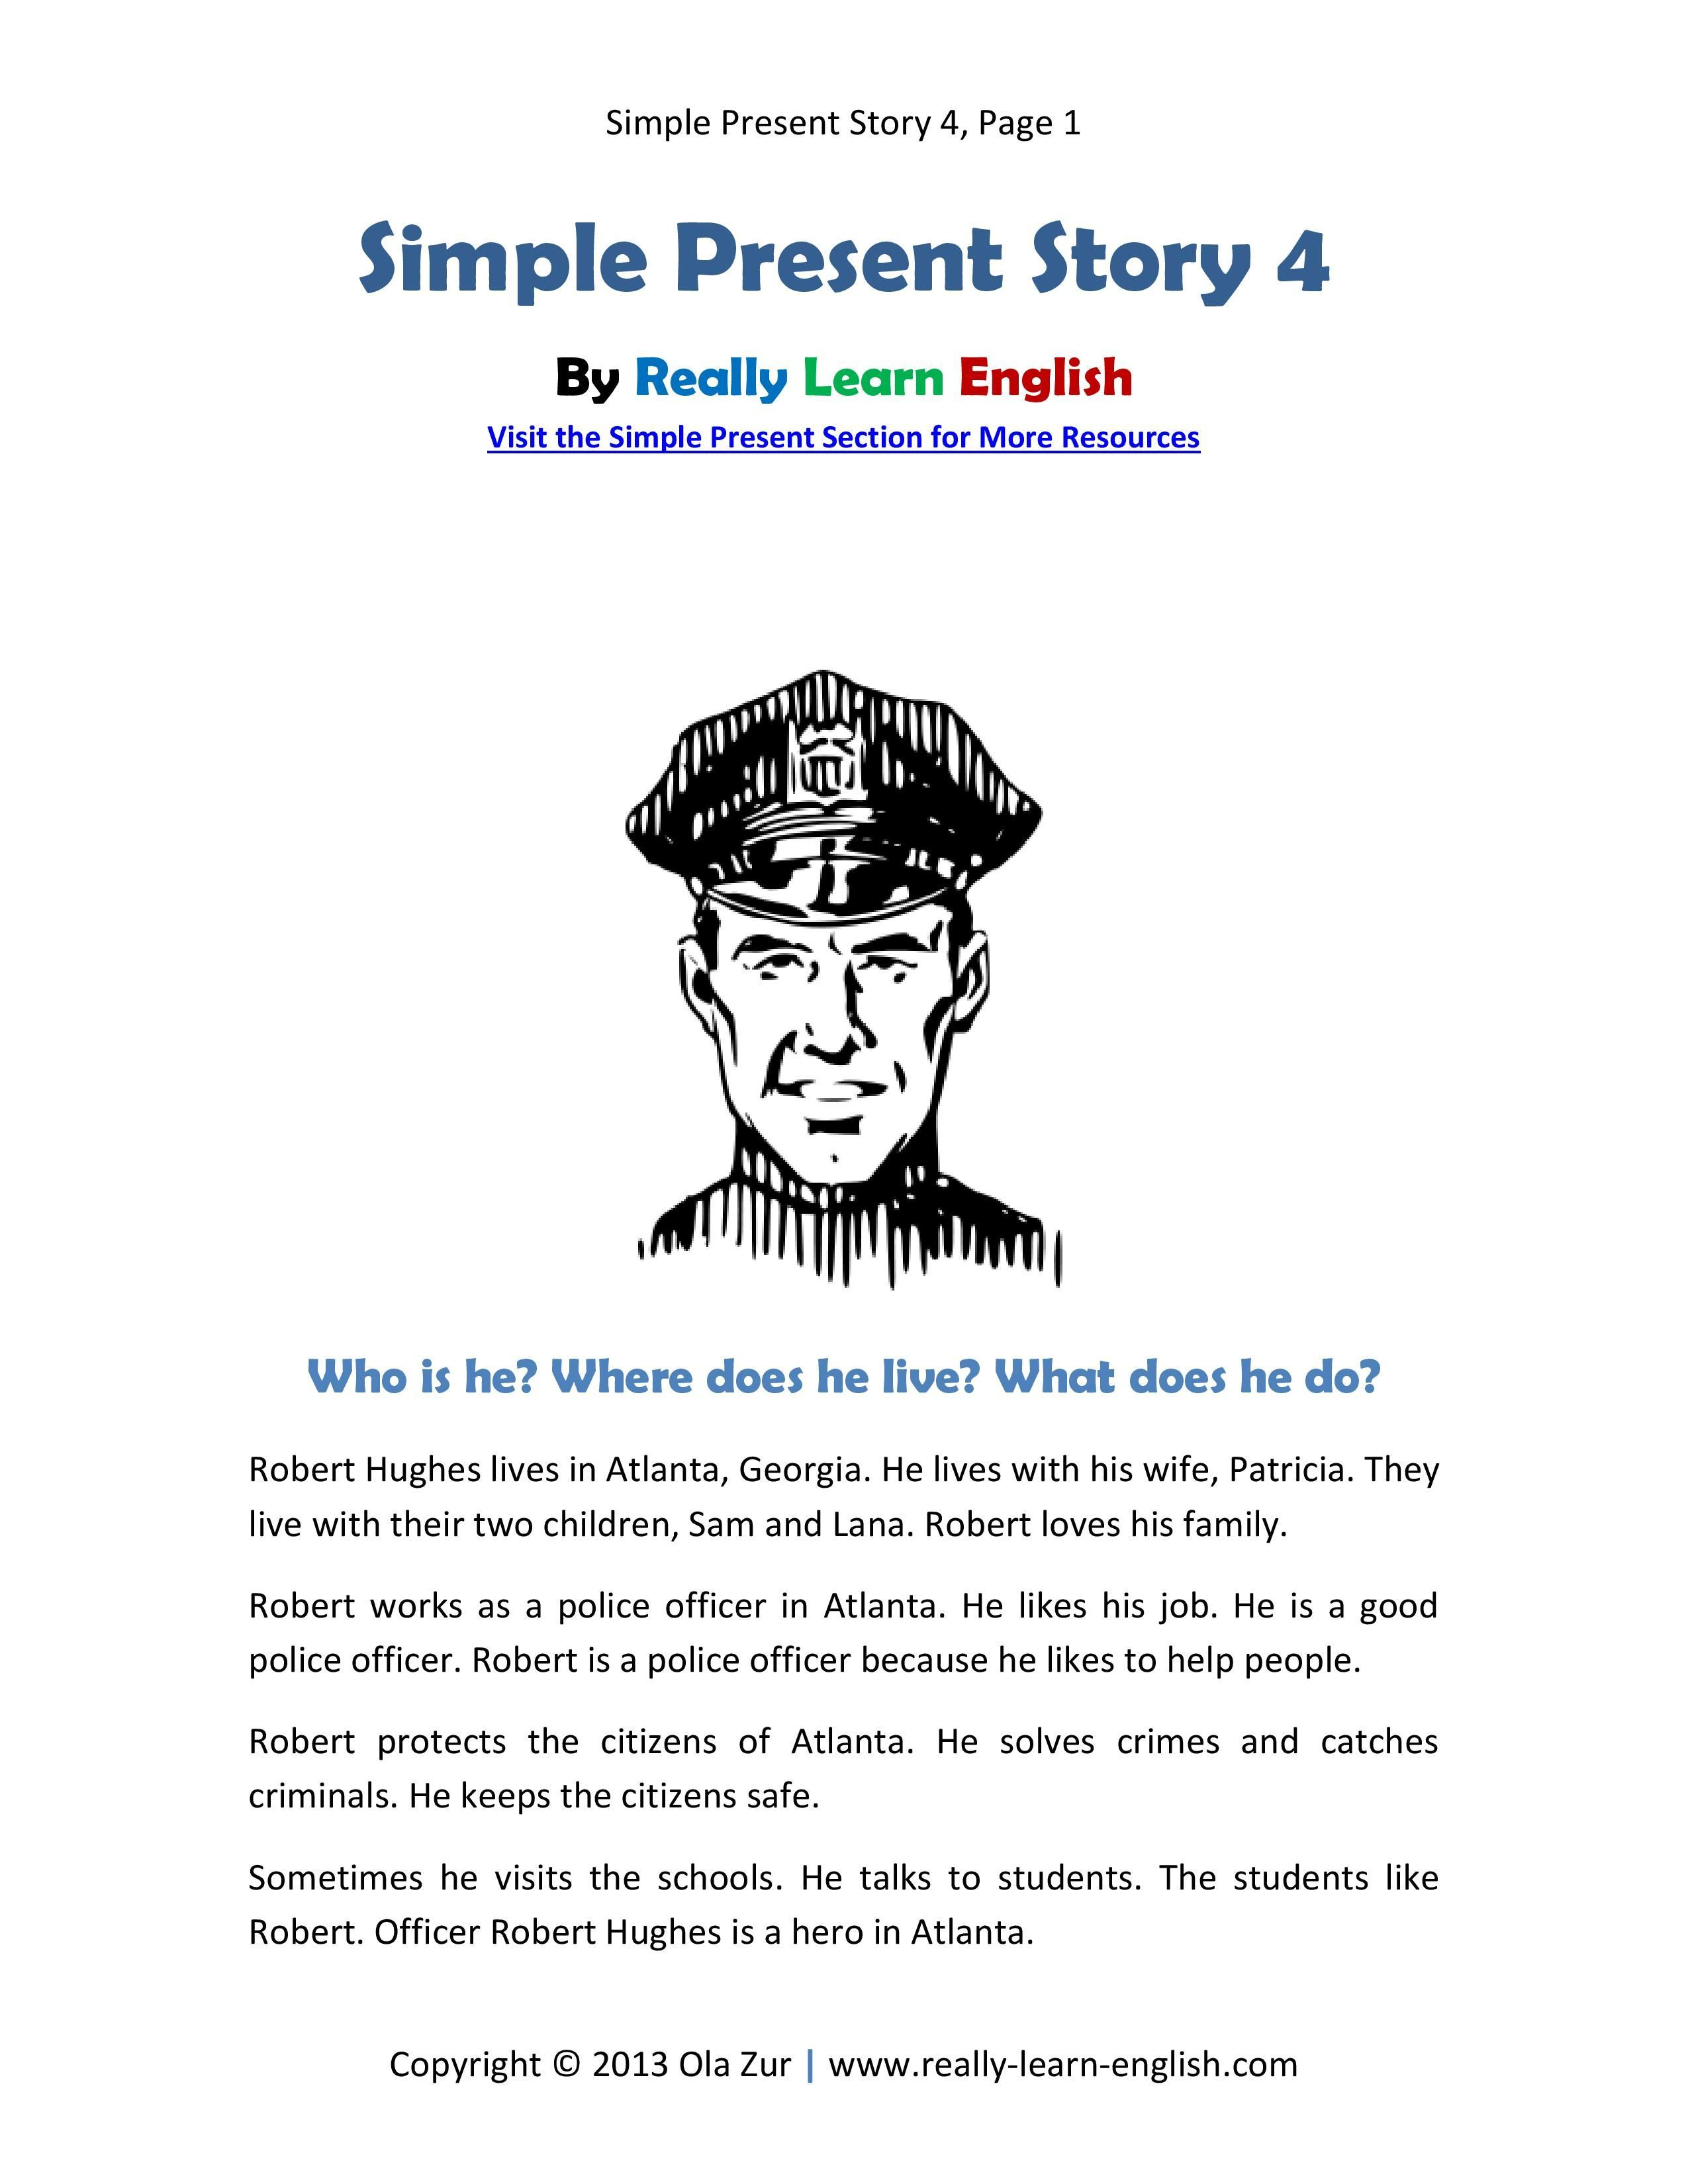 Worksheet 5th Grade Level Short Stories 1000 images about english reading on pinterest